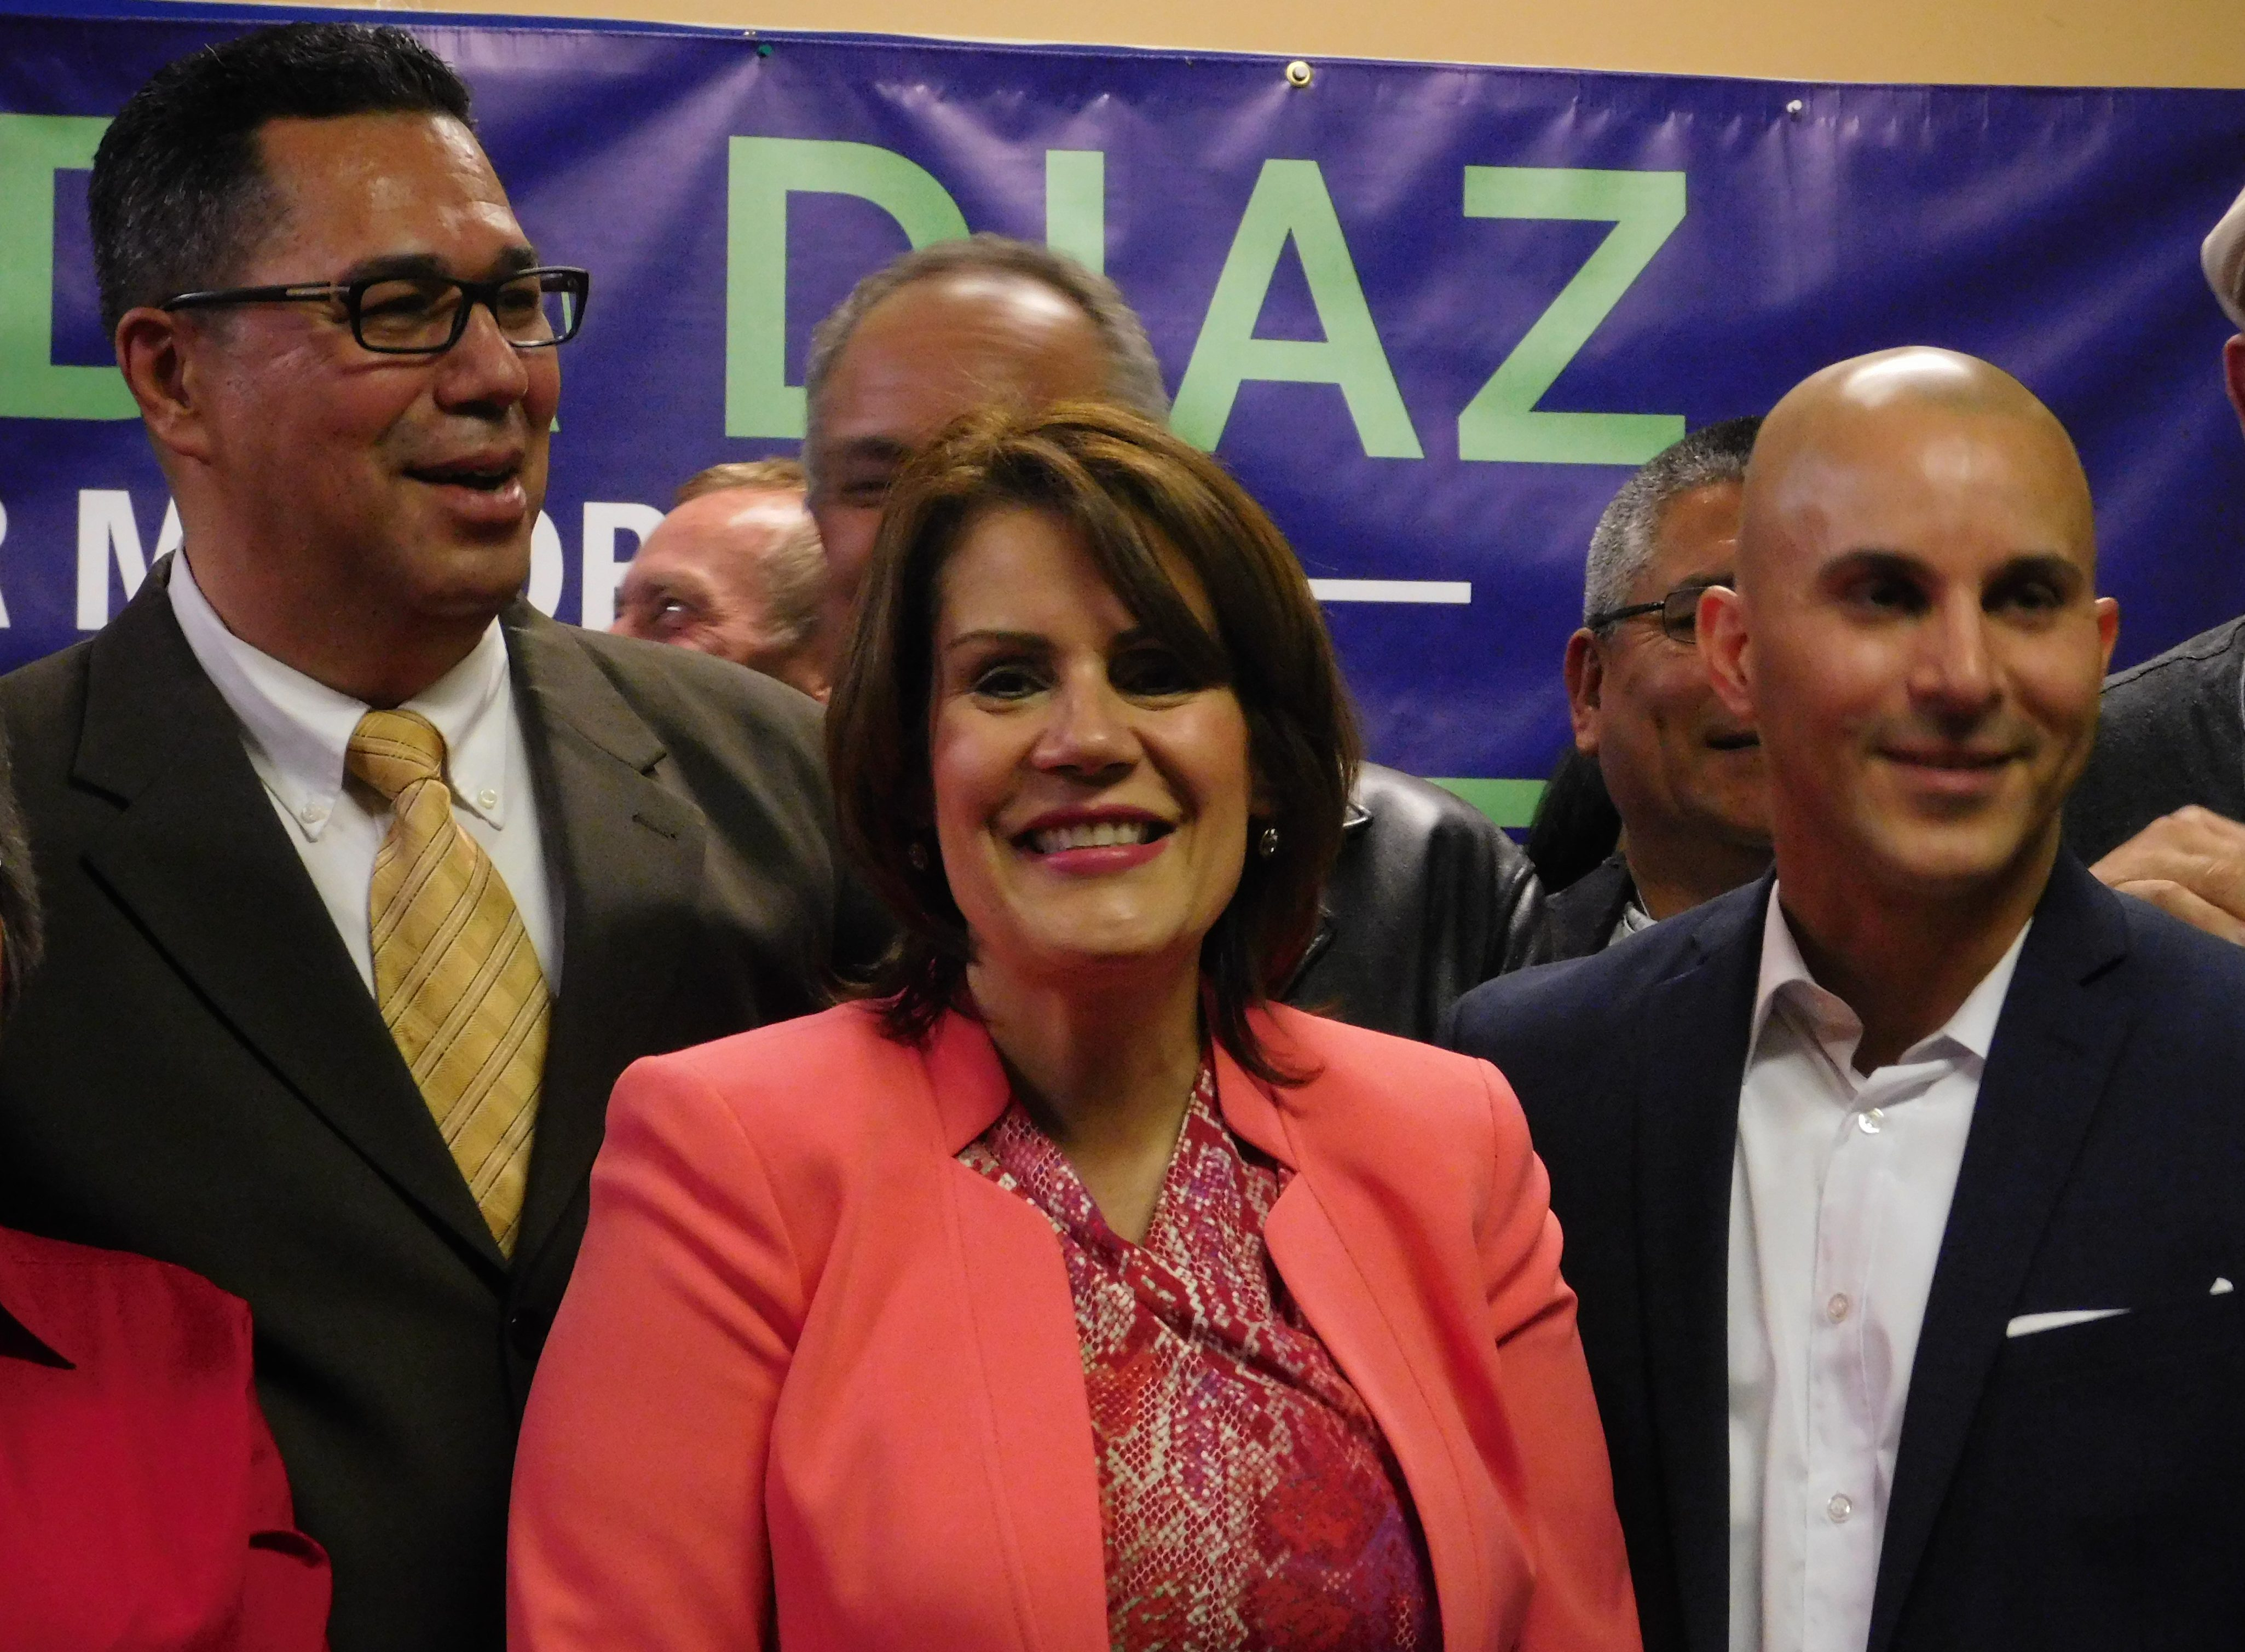 WILDA DIAZ. The Perth Amboy mayor is facing three opponents as she aims to win back her seat this November. If she wins, she will hold on to her title of New Jersey's only currently serving Latina mayor.